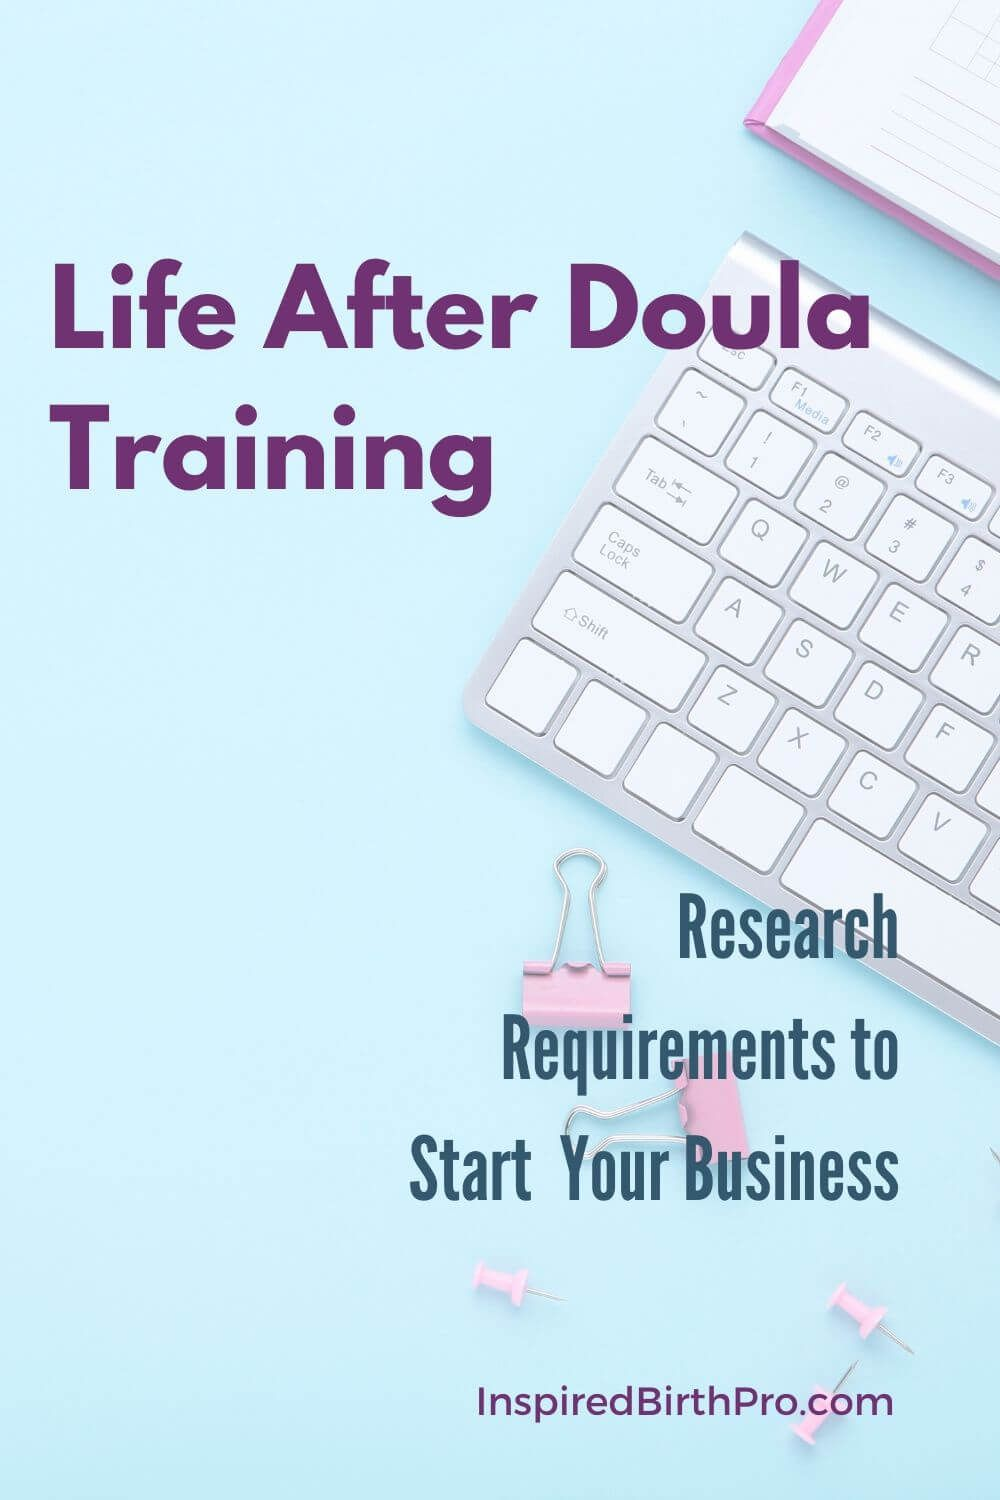 Doula Business TipResearch Requirements to Start a